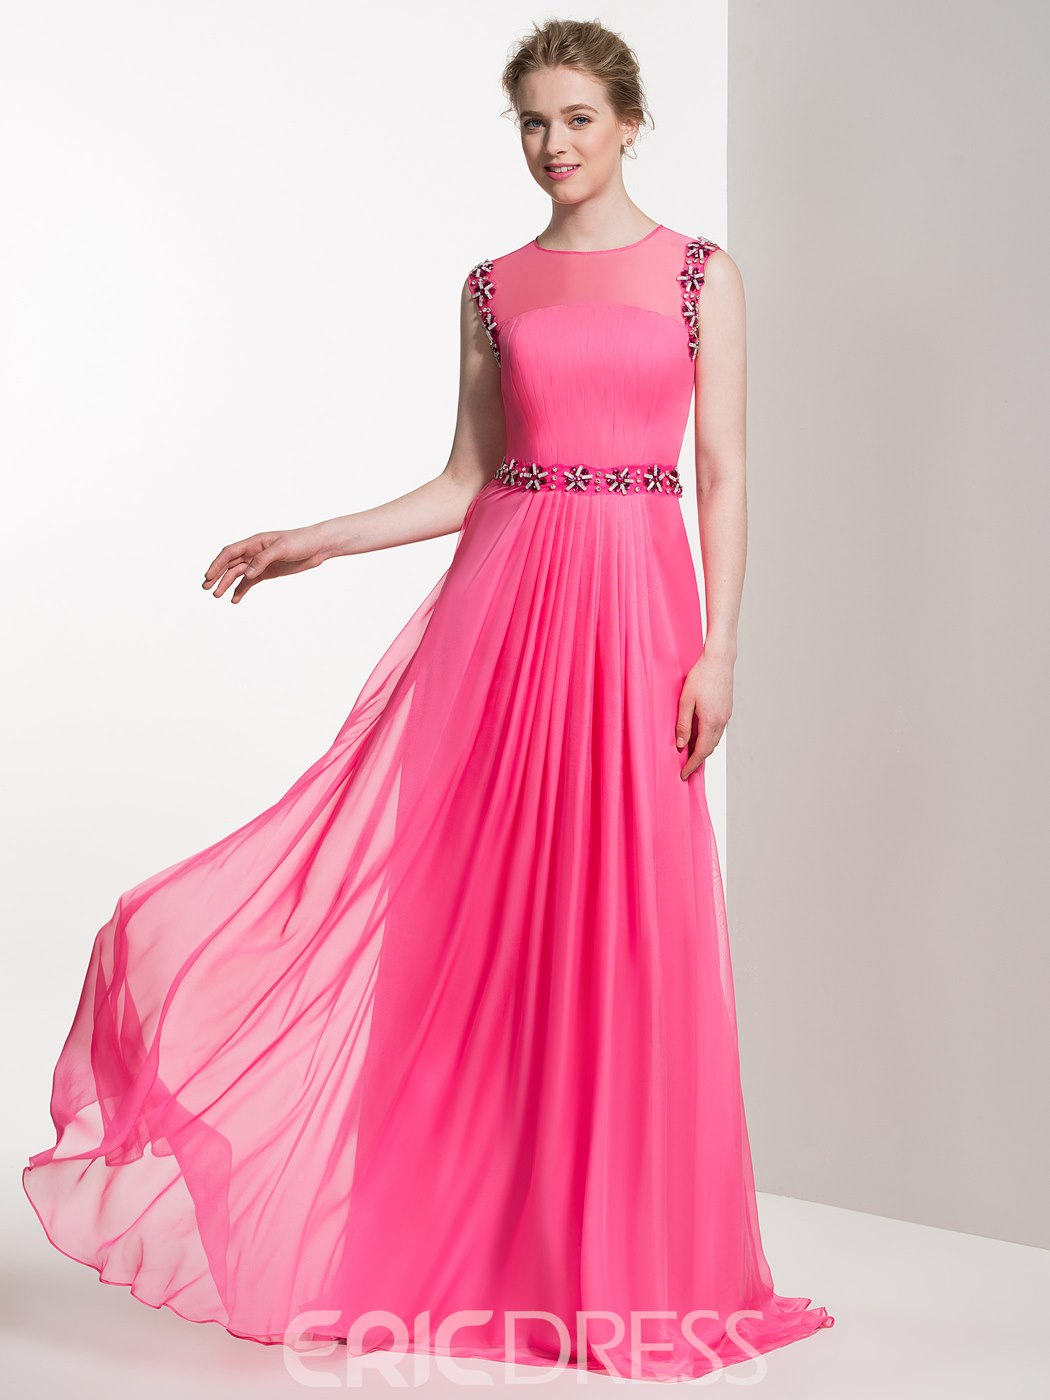 Ericdress Beautiful Beaded Jewel A Line Long Bridesmaid Dress